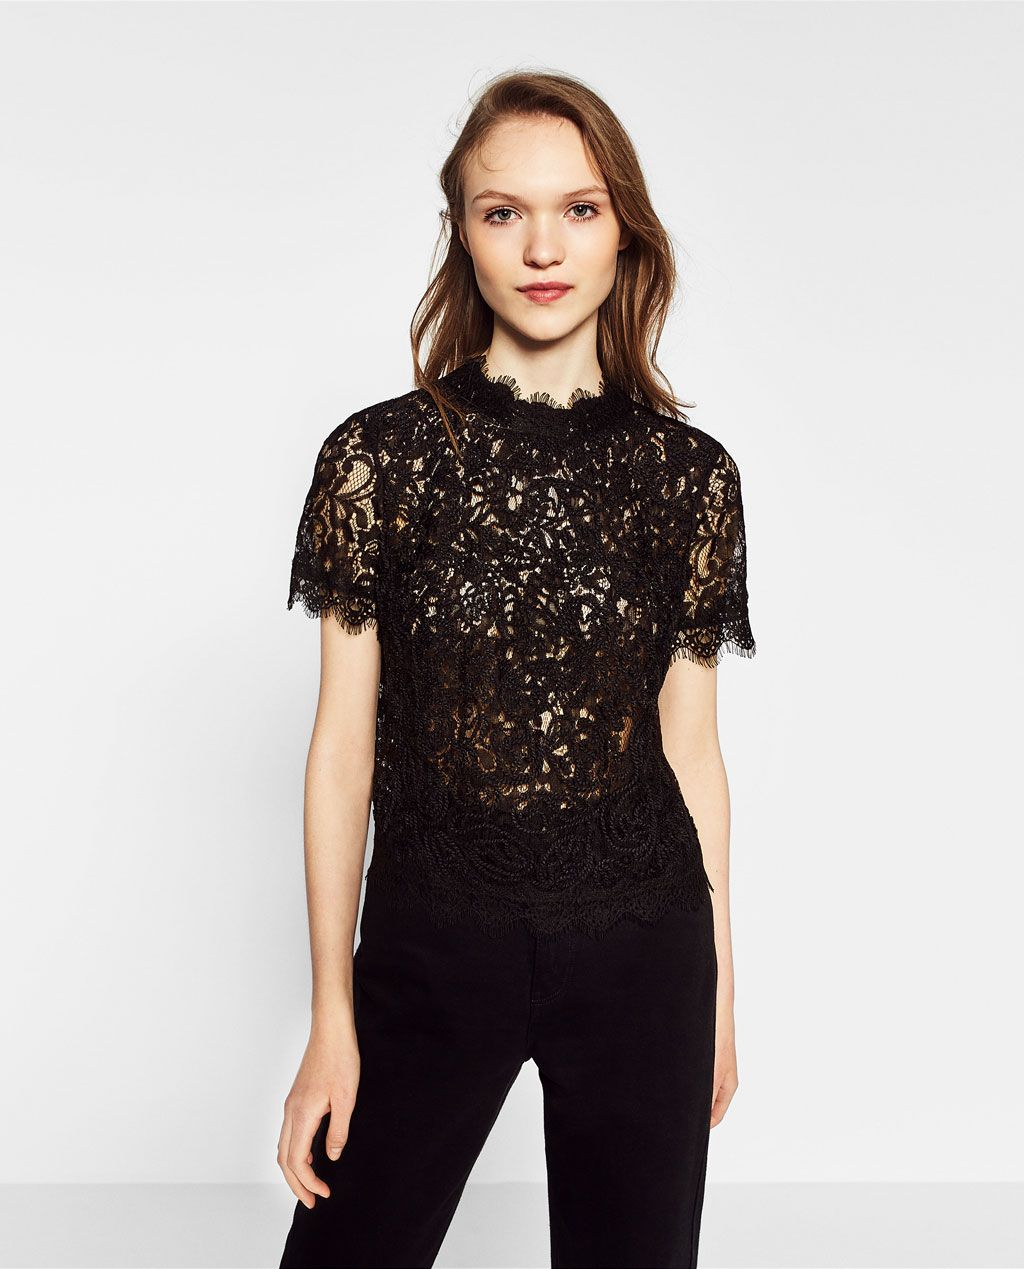 Black t shirt dress zara - Embroidered Lace T Shirt View All Tops Woman Collection Ss